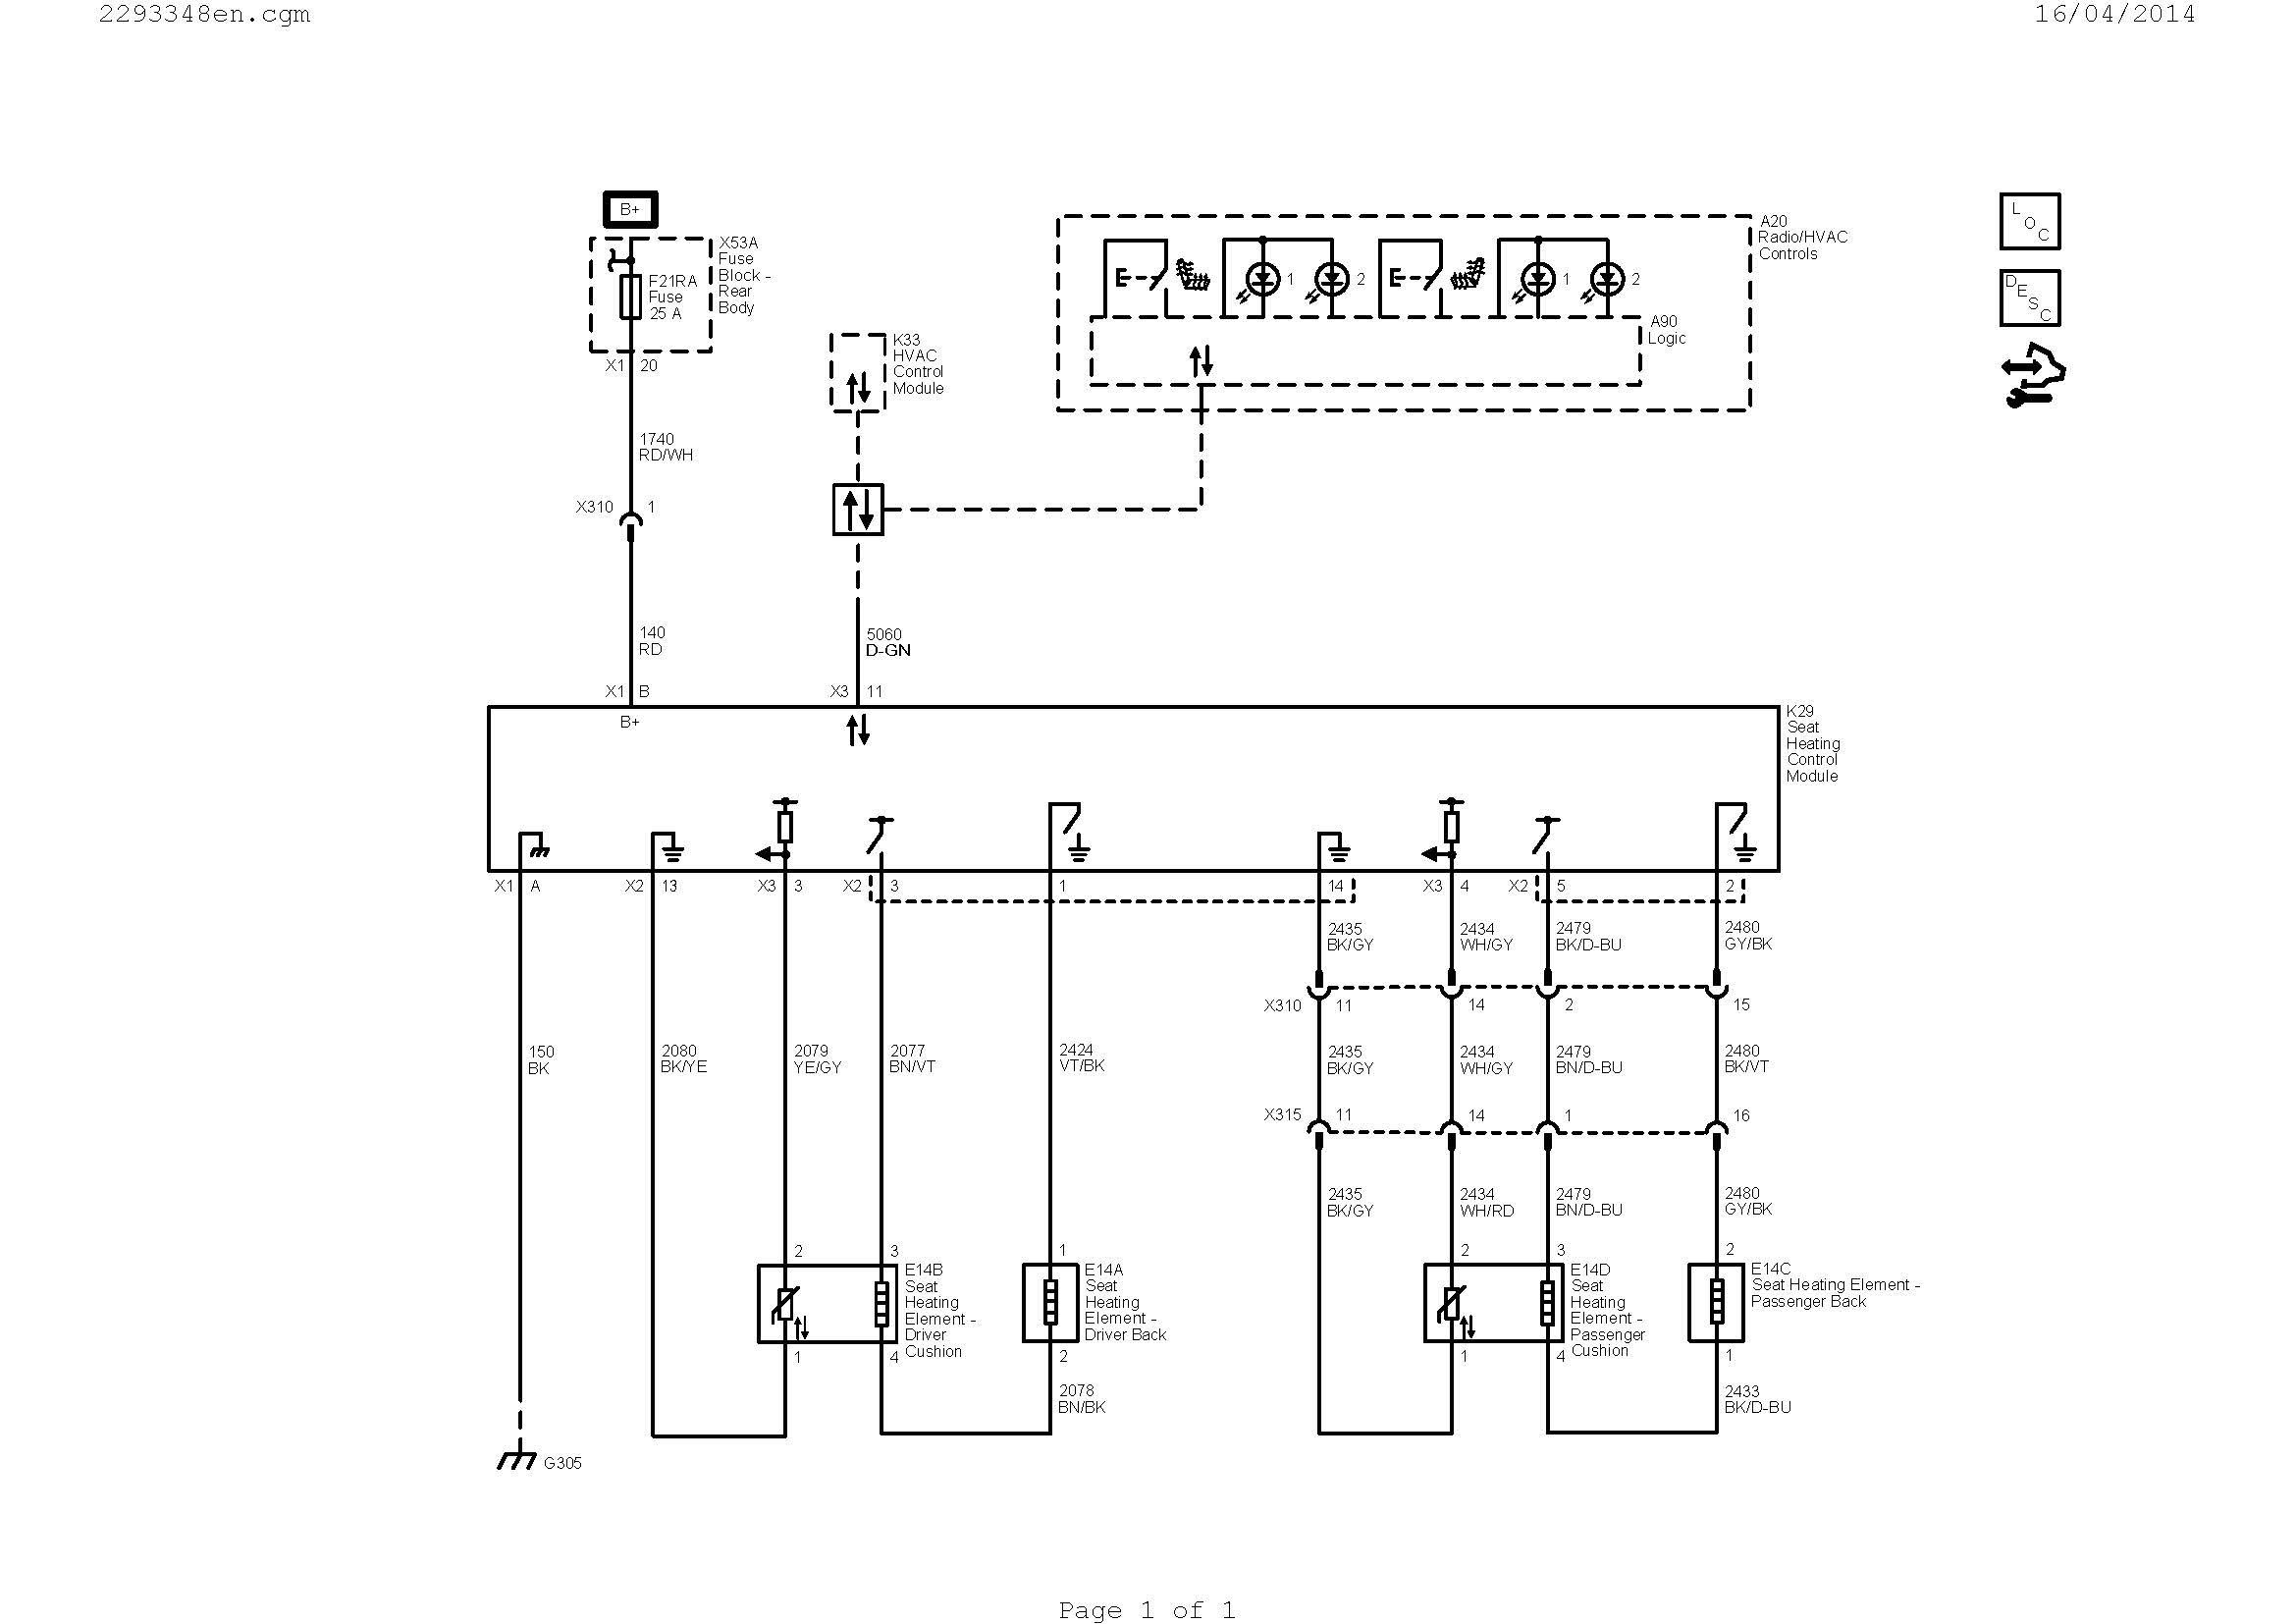 fire alarm flow switch wiring diagram Download-flow switch wiring diagram Download on on on switch wiring diagram Collection Wiring Diagram For DOWNLOAD Wiring Diagram Sheets Detail Name flow switch 17-d